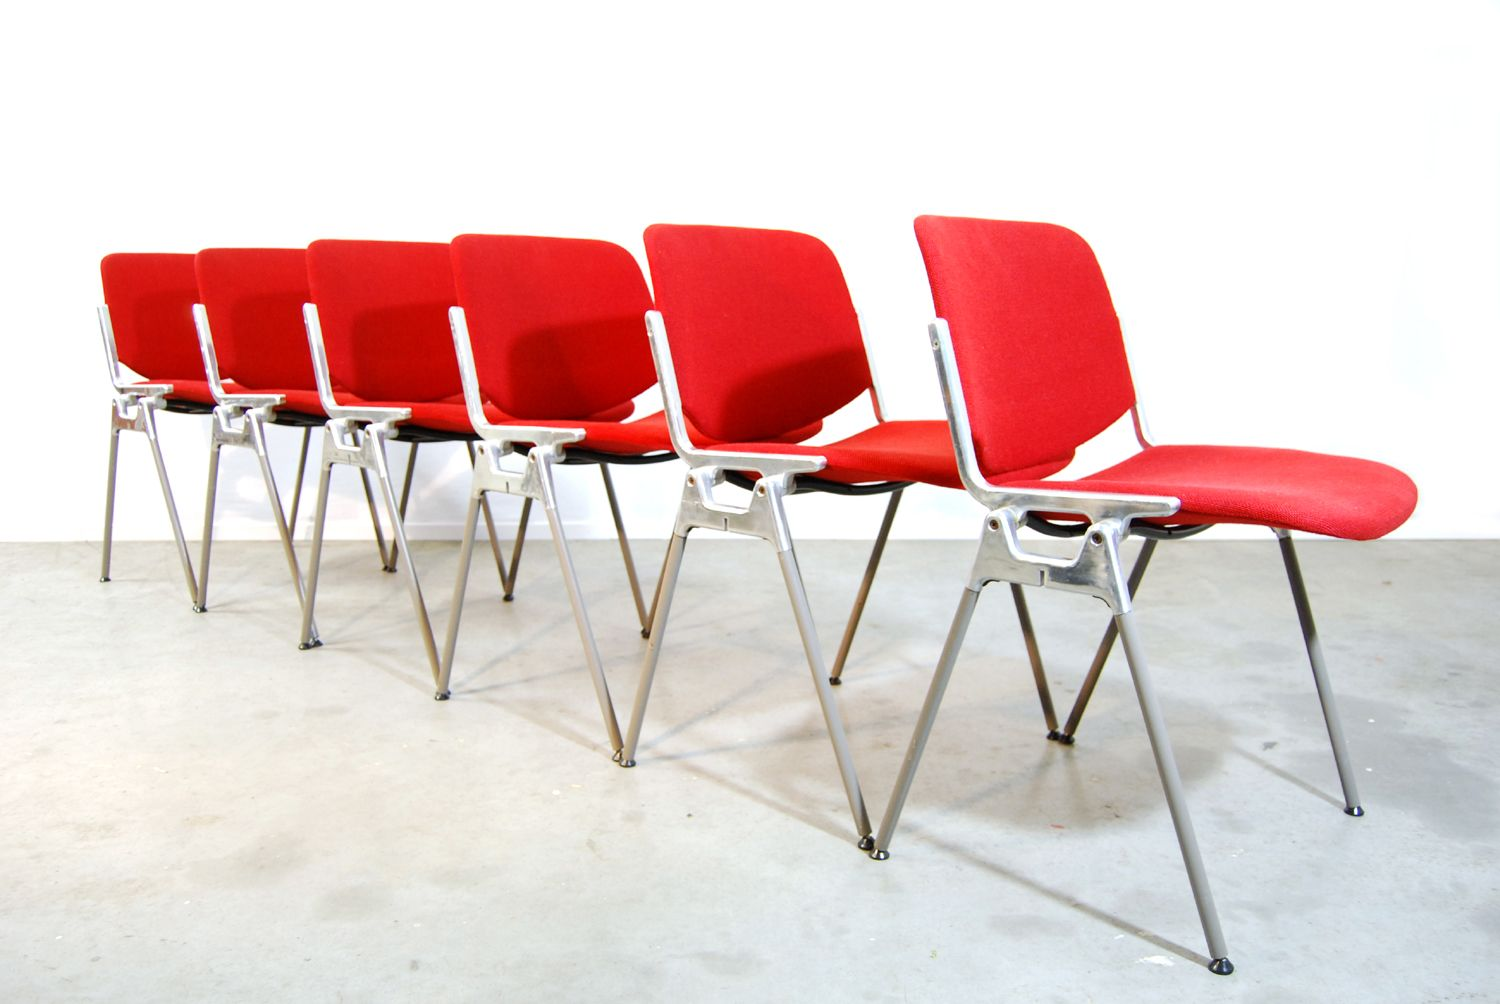 italian red dining chairs by giancarlo piretti for castelli s  - on hold